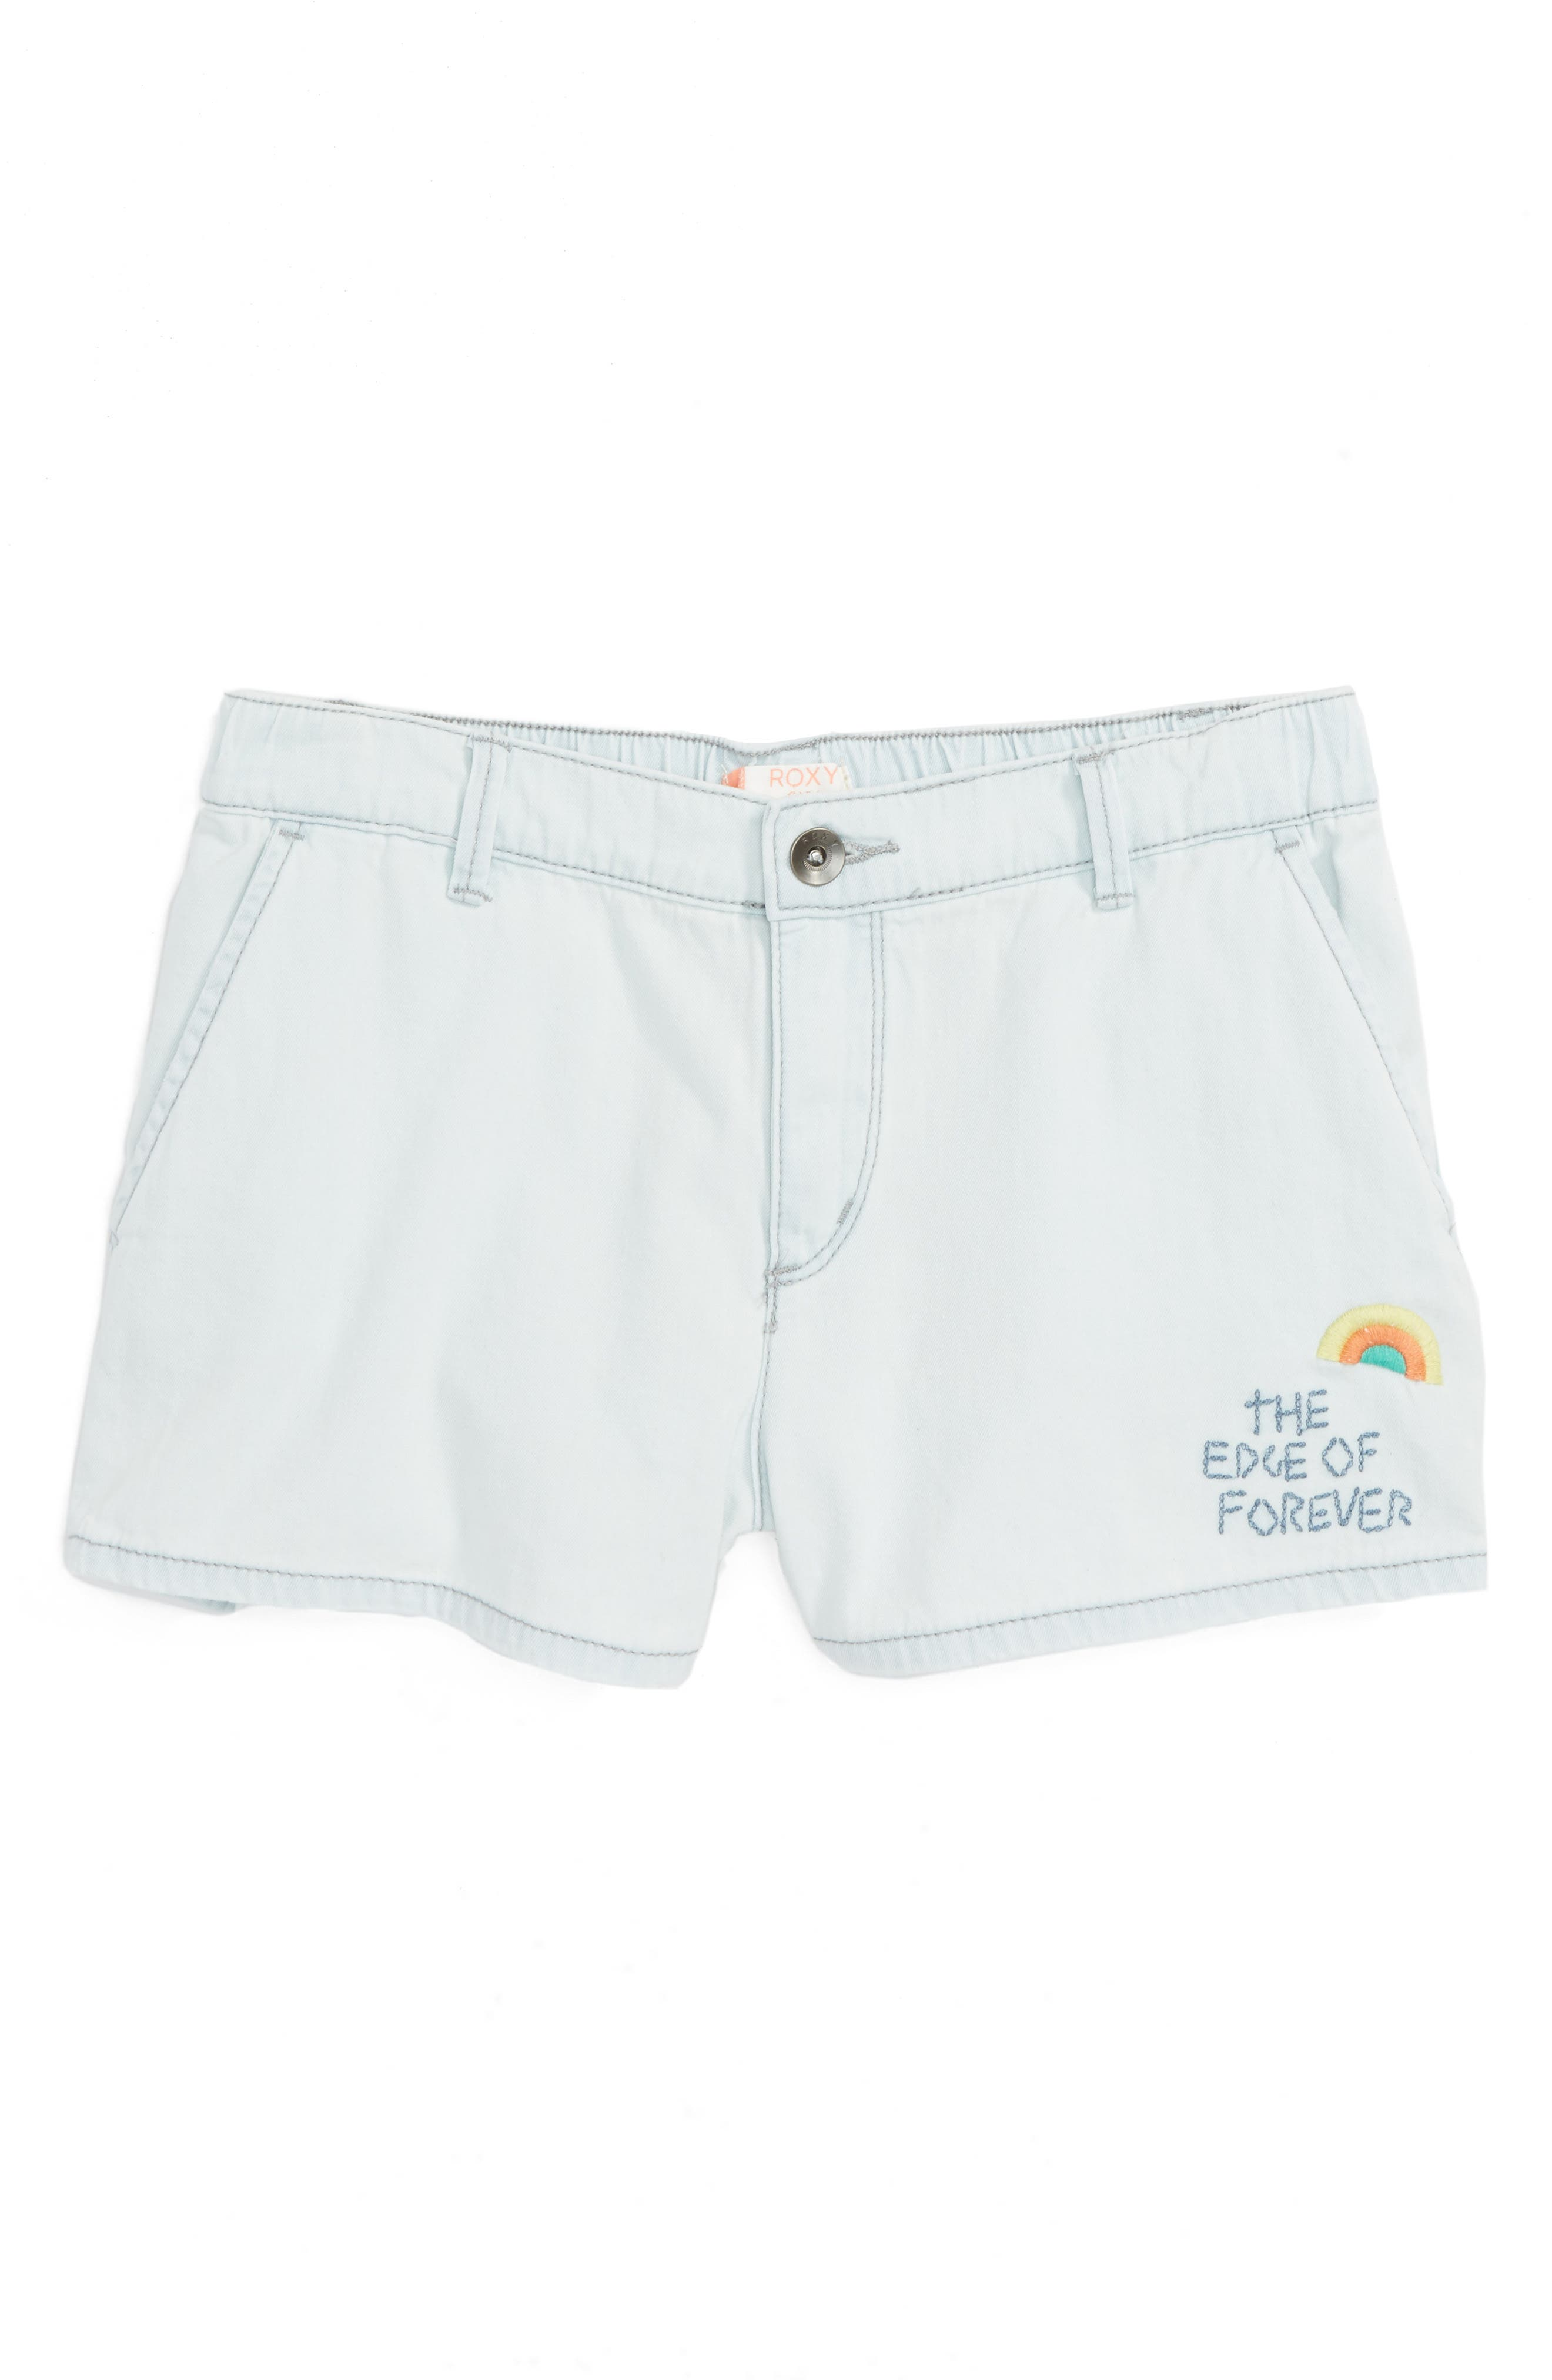 West Coast And U - Edge of Forever Rainbow Shorts,                             Main thumbnail 1, color,                             Bleached Blue